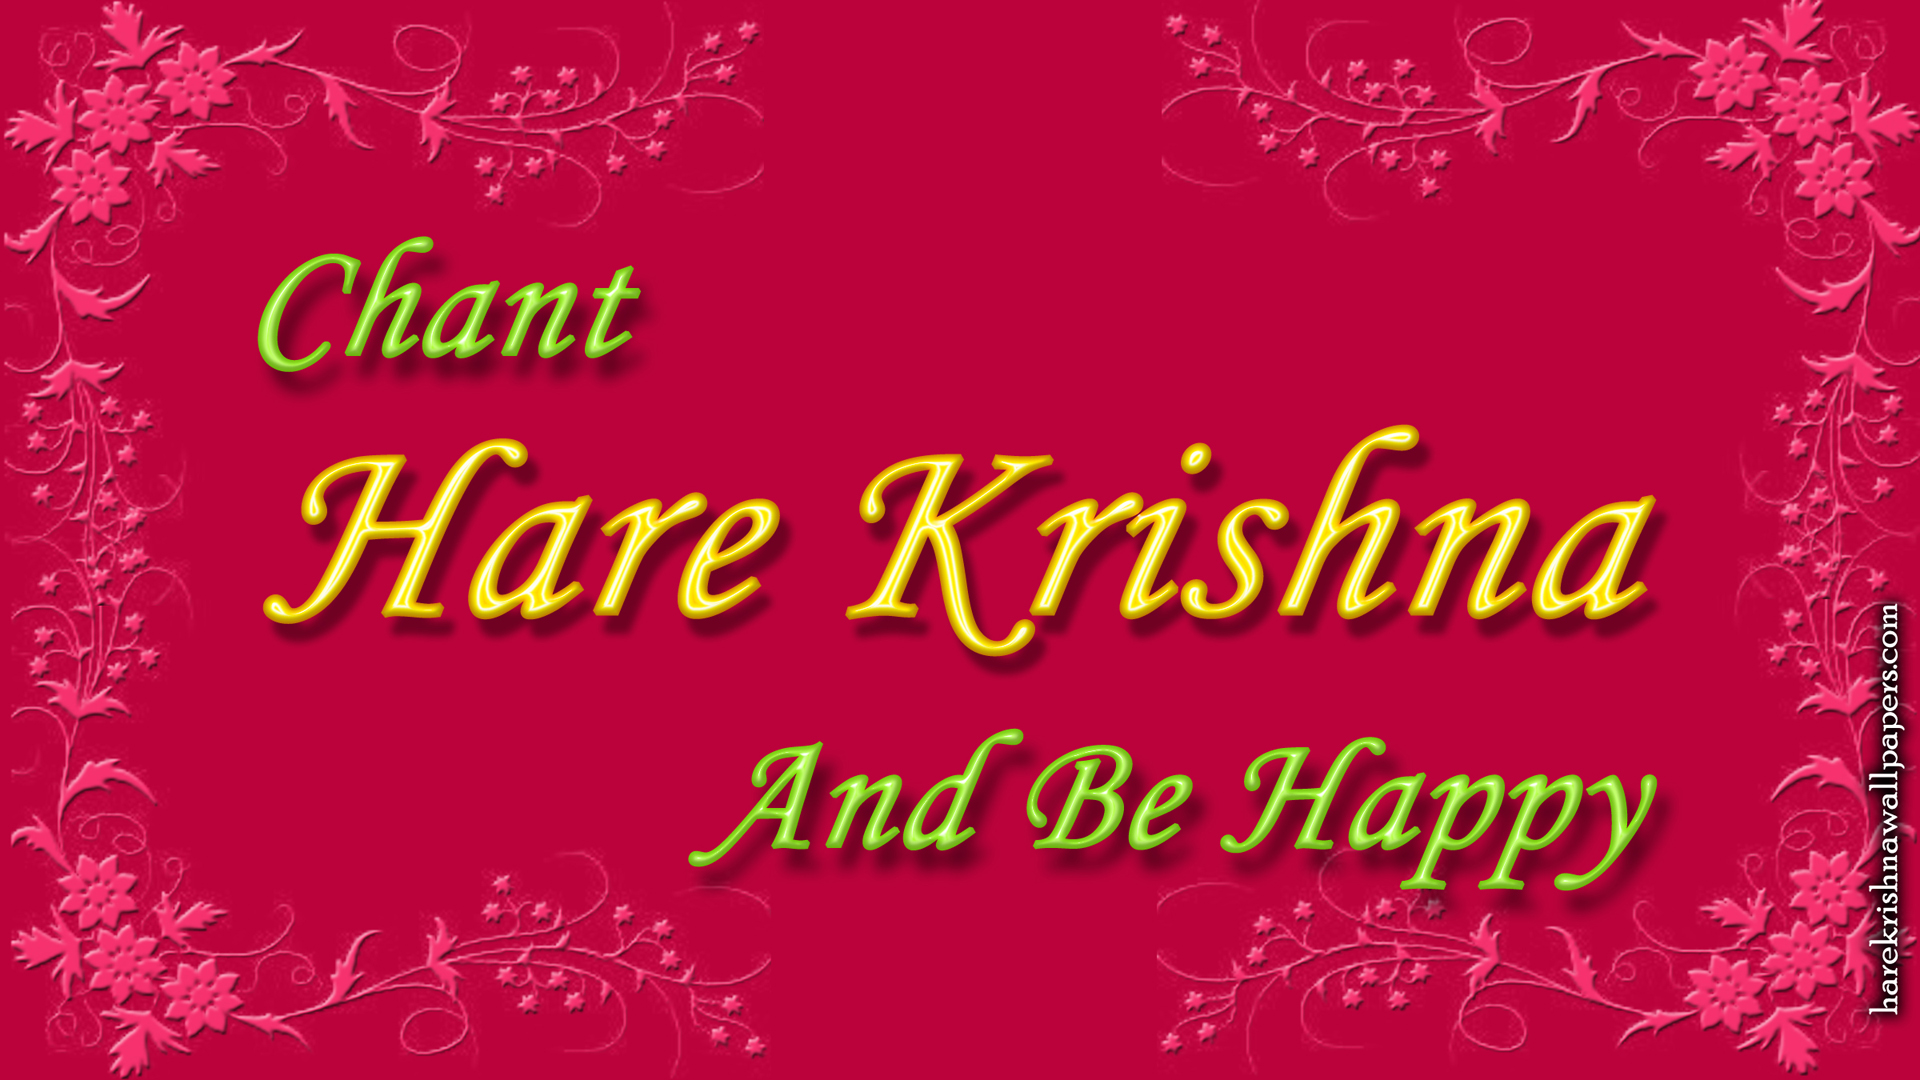 Chant Hare Krishna and be happy Wallpaper (008) Size 1920x1080 Download